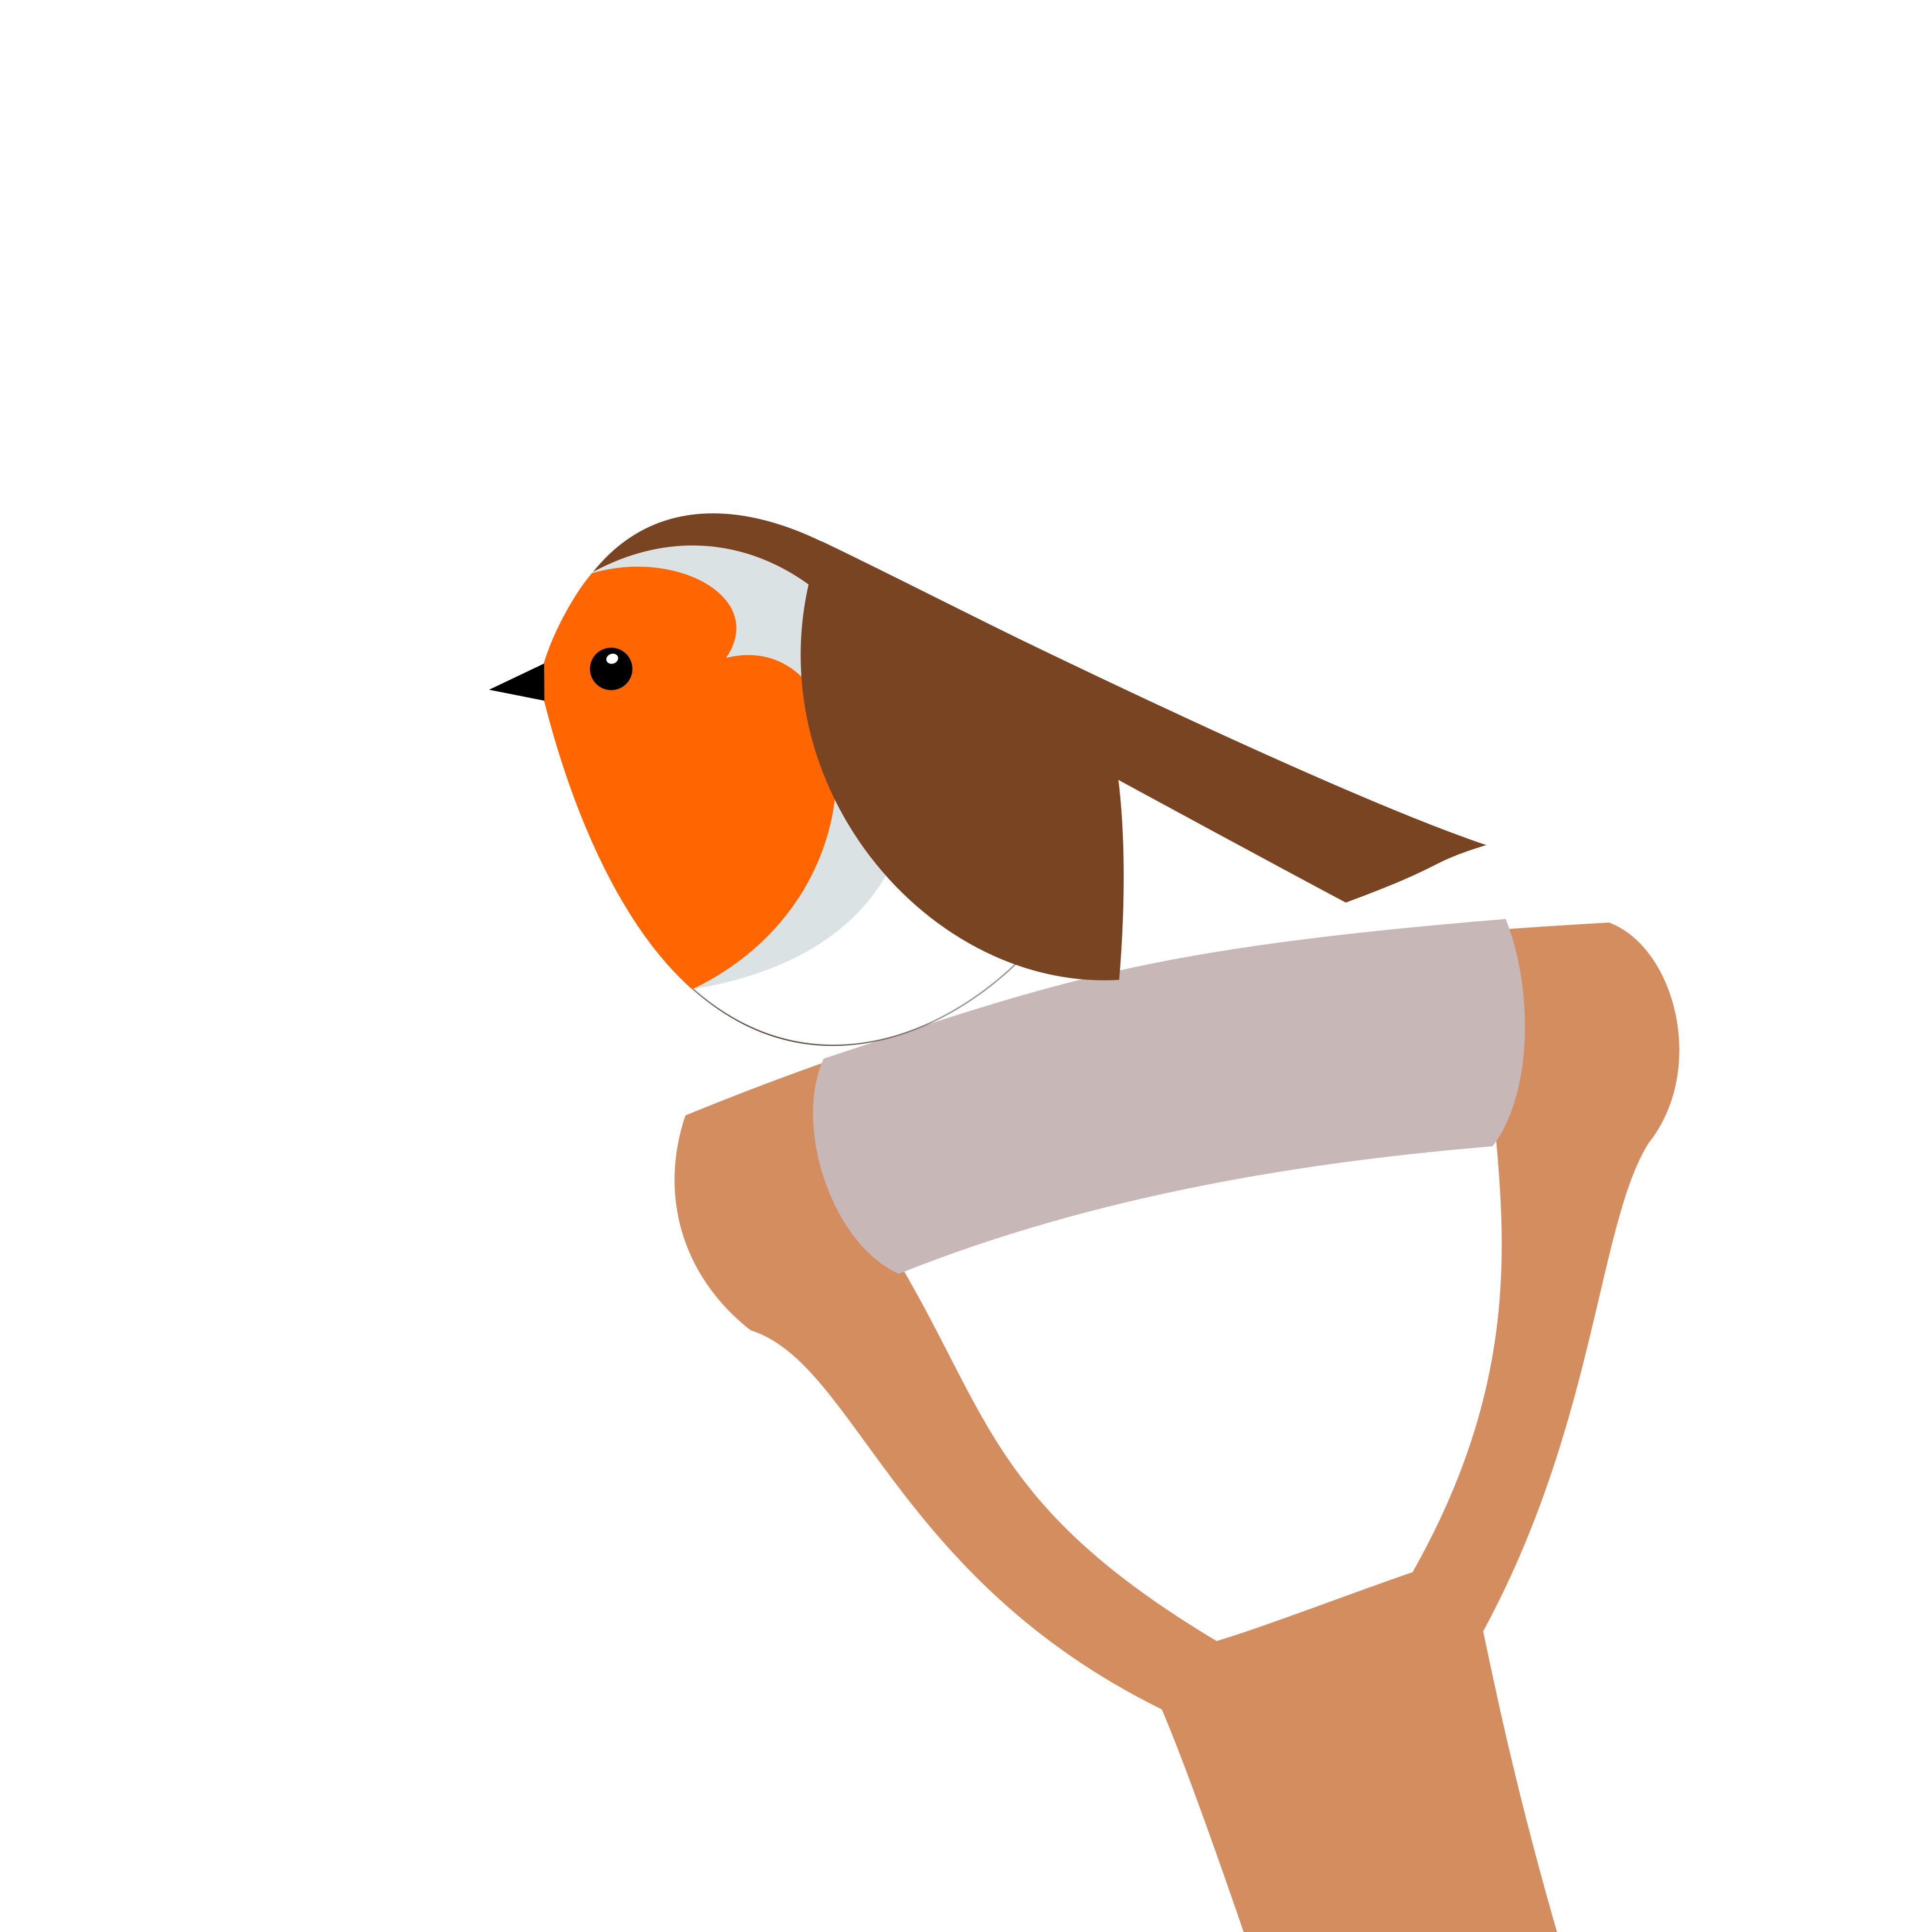 A robin perched on top of a spade handle. Simply drawn with flat bold colours on a white background